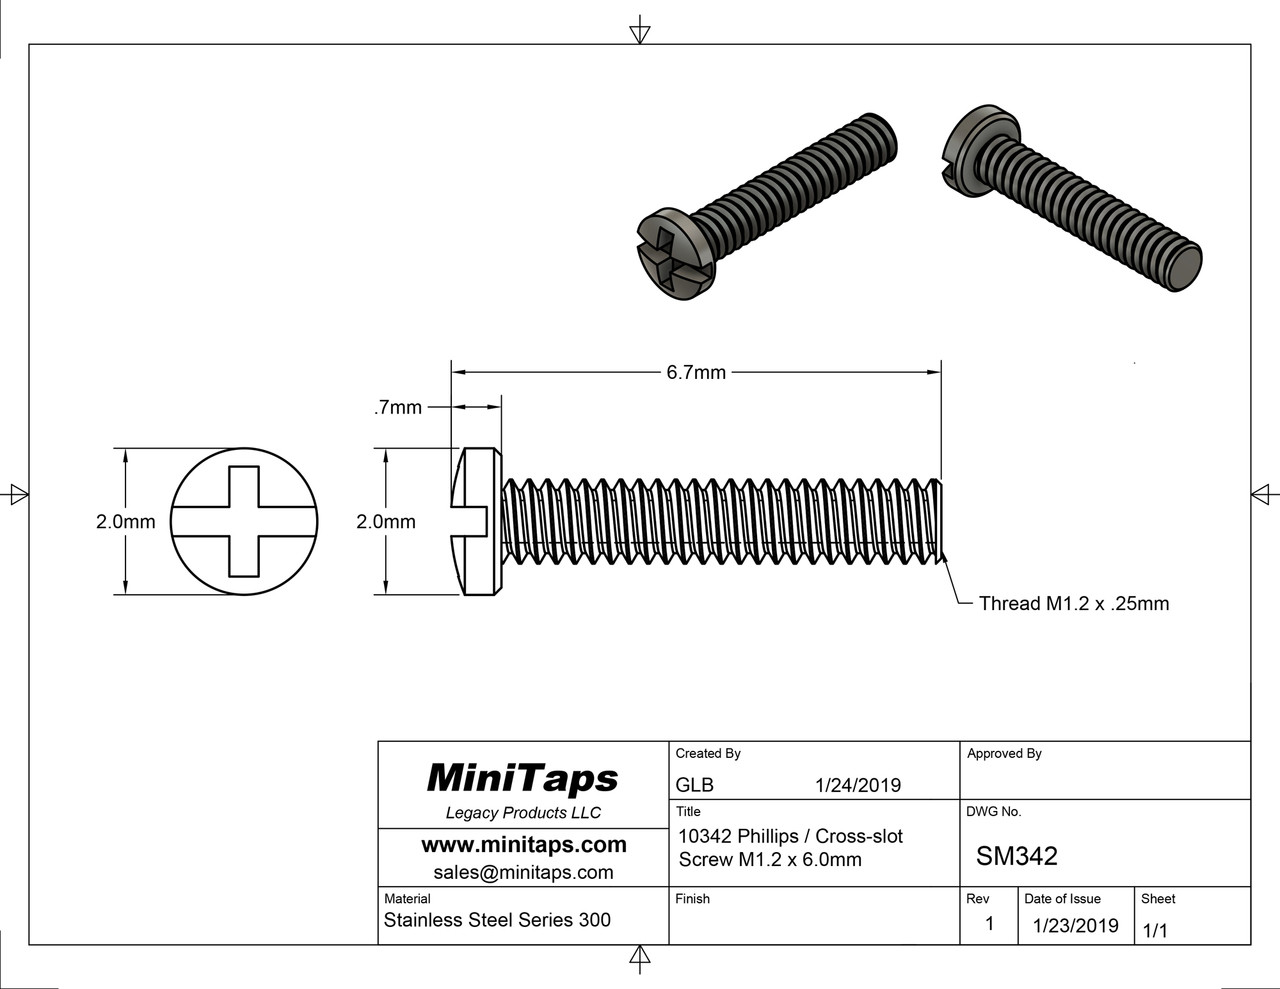 Machine Screw Pan Head with Philips X-Slot Drive  Thread M1.2  (1.20UNM), Pitch .25mm, Threaded Length 6mm, Overall length 6.7mm  Stainless Steel  Price is for 100 count package with bulk pricing available.   Please contact sales@minitaps.com for any additional questions or information.